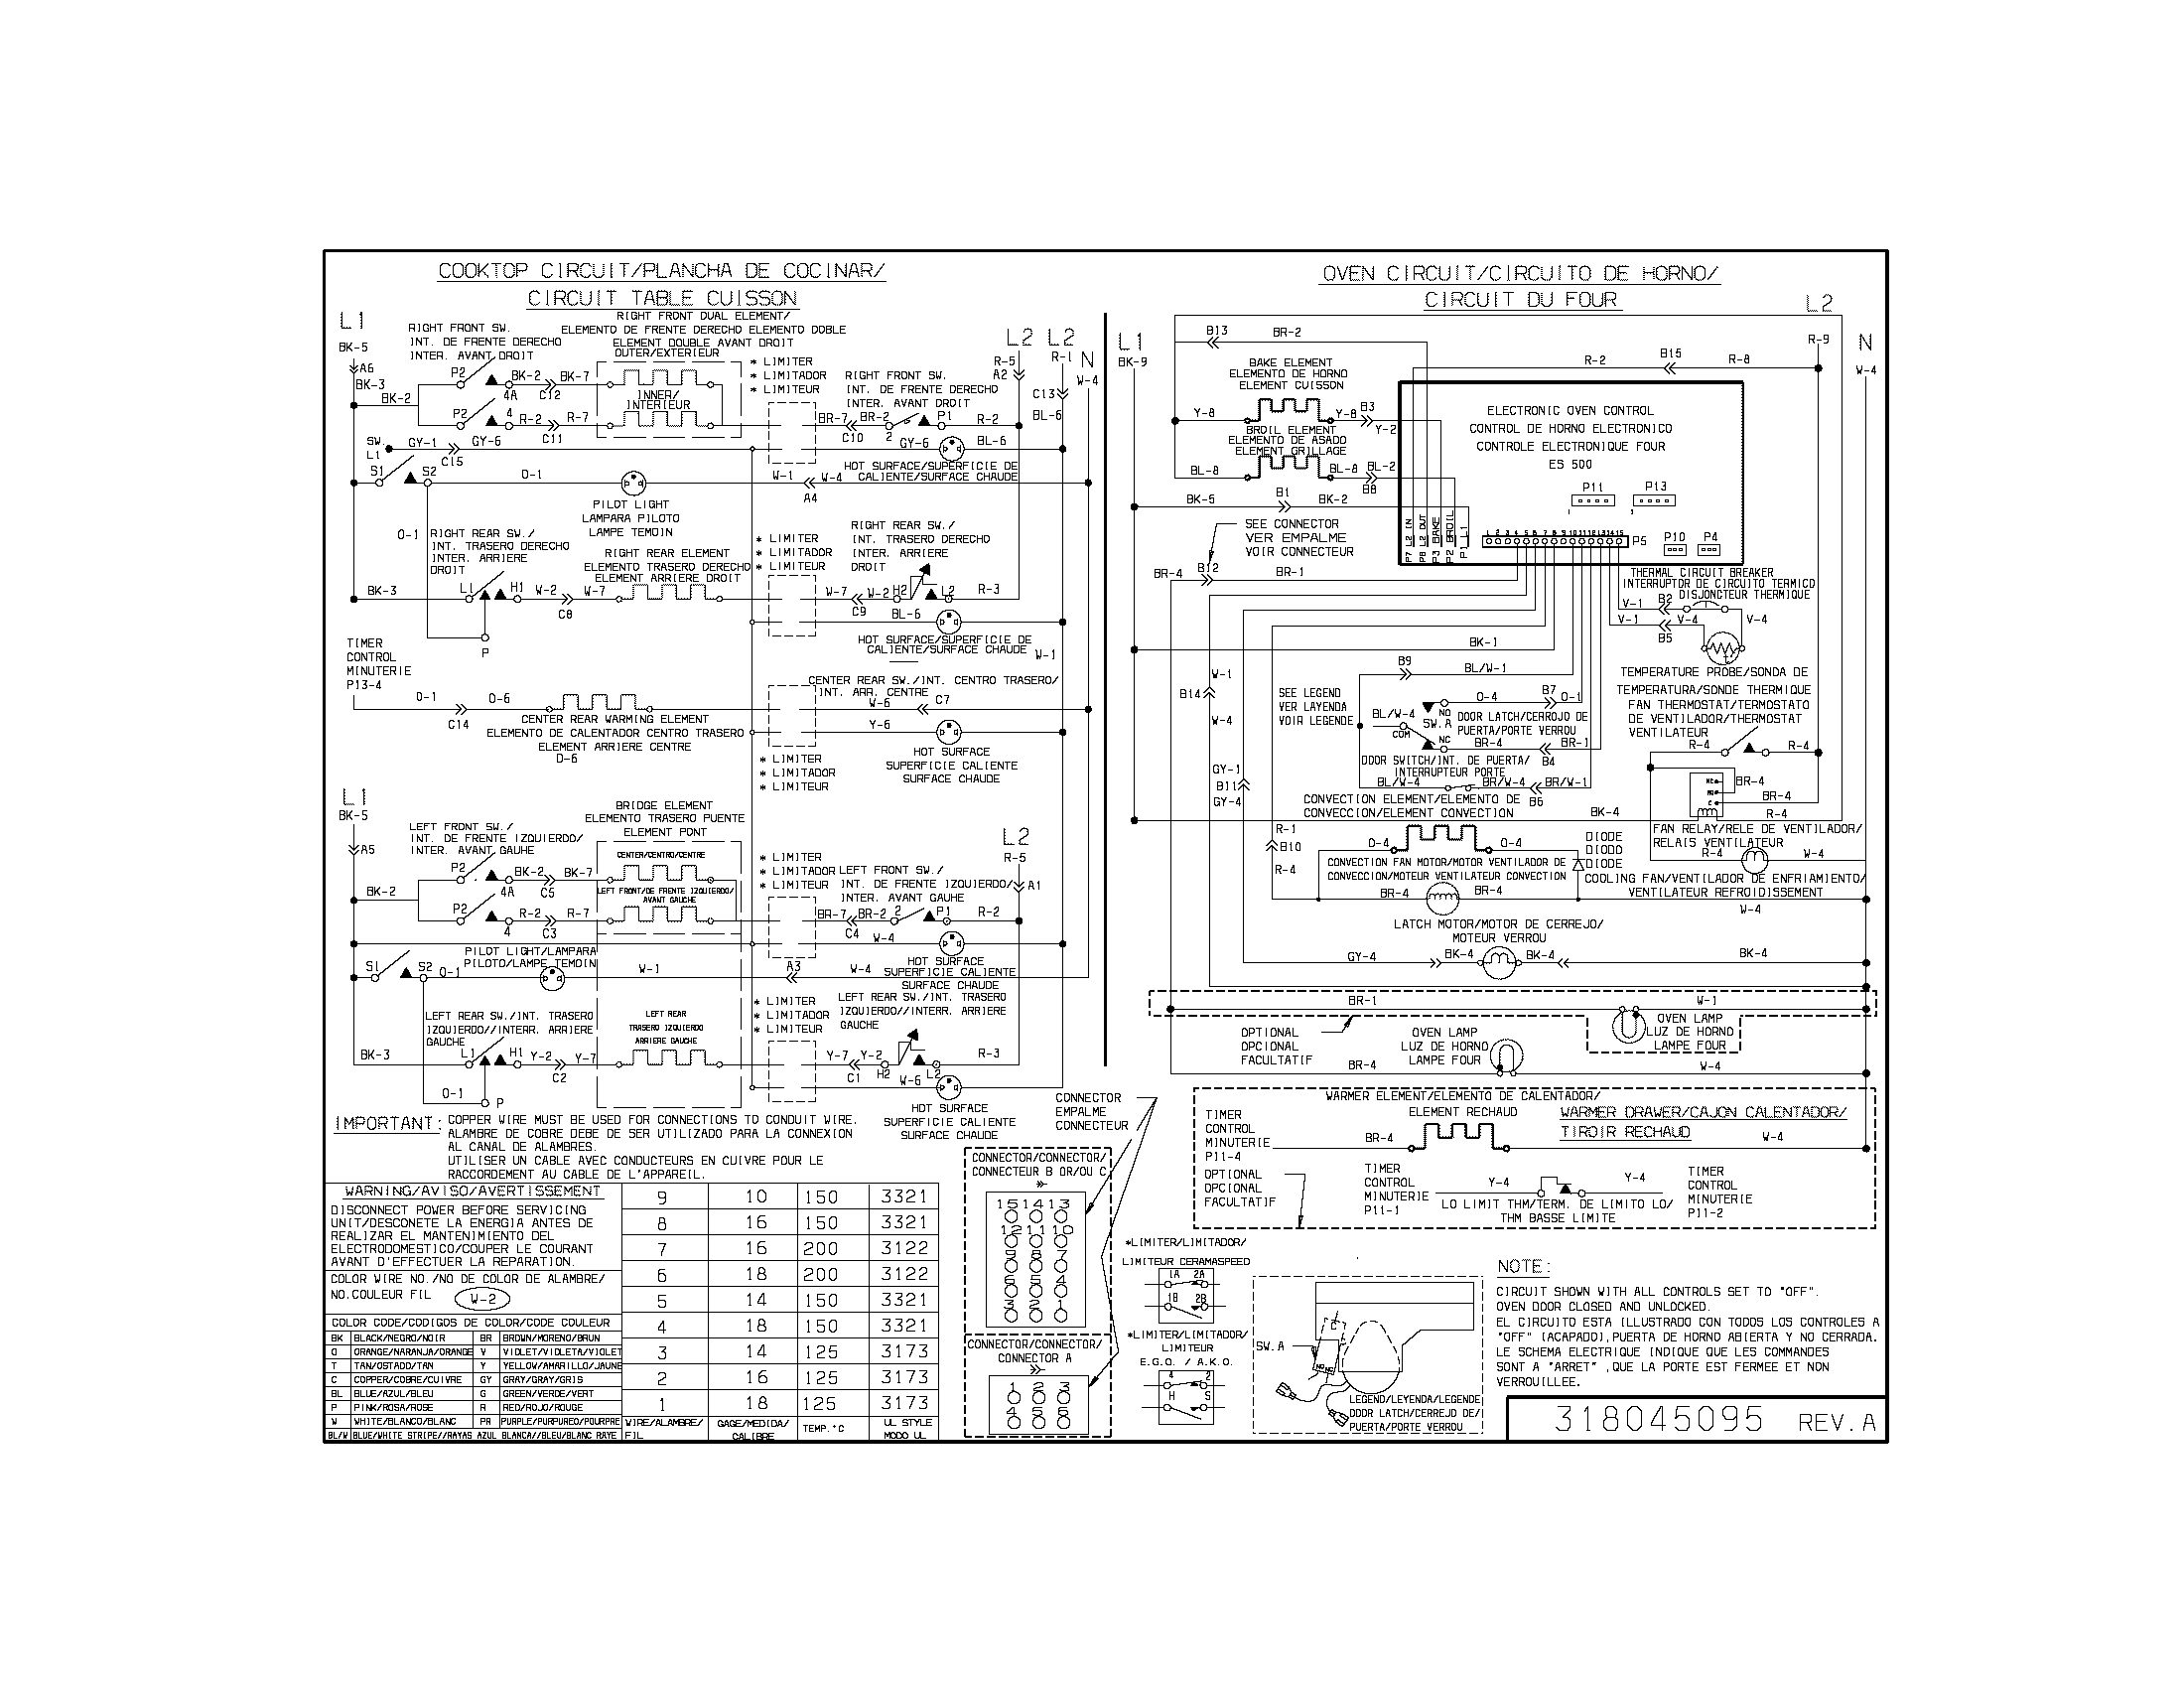 wiring diagram parts frigidaire cpes389ac1 range timer stove clocks and appliance timers wiring diagram for frigidaire air conditioner at mifinder.co